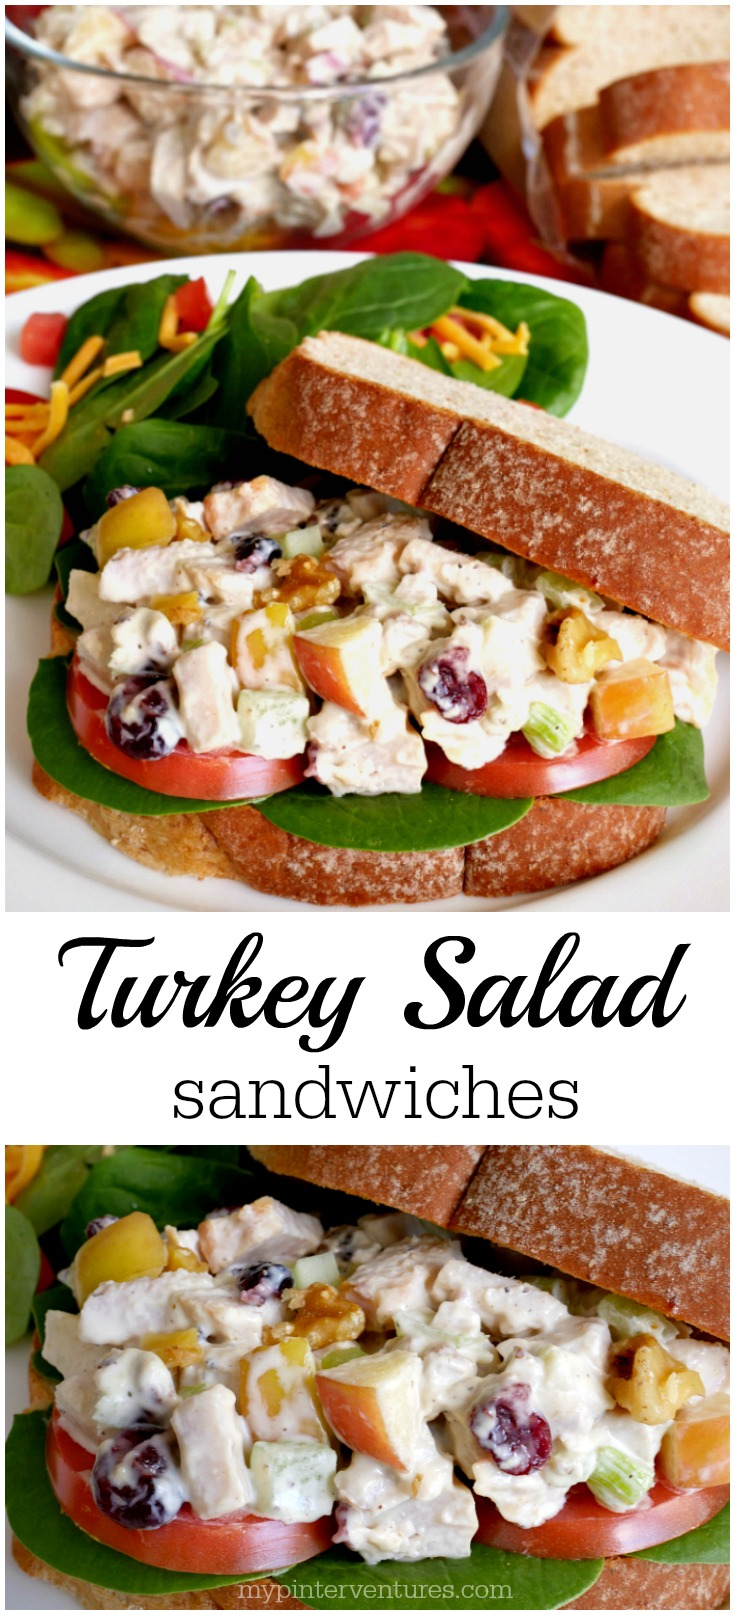 Simple turkey salad sandwiches - leftover Thanksgiving turkey, cranberries, celery, apples, & seasonings. #ad #99yourthanksgiving